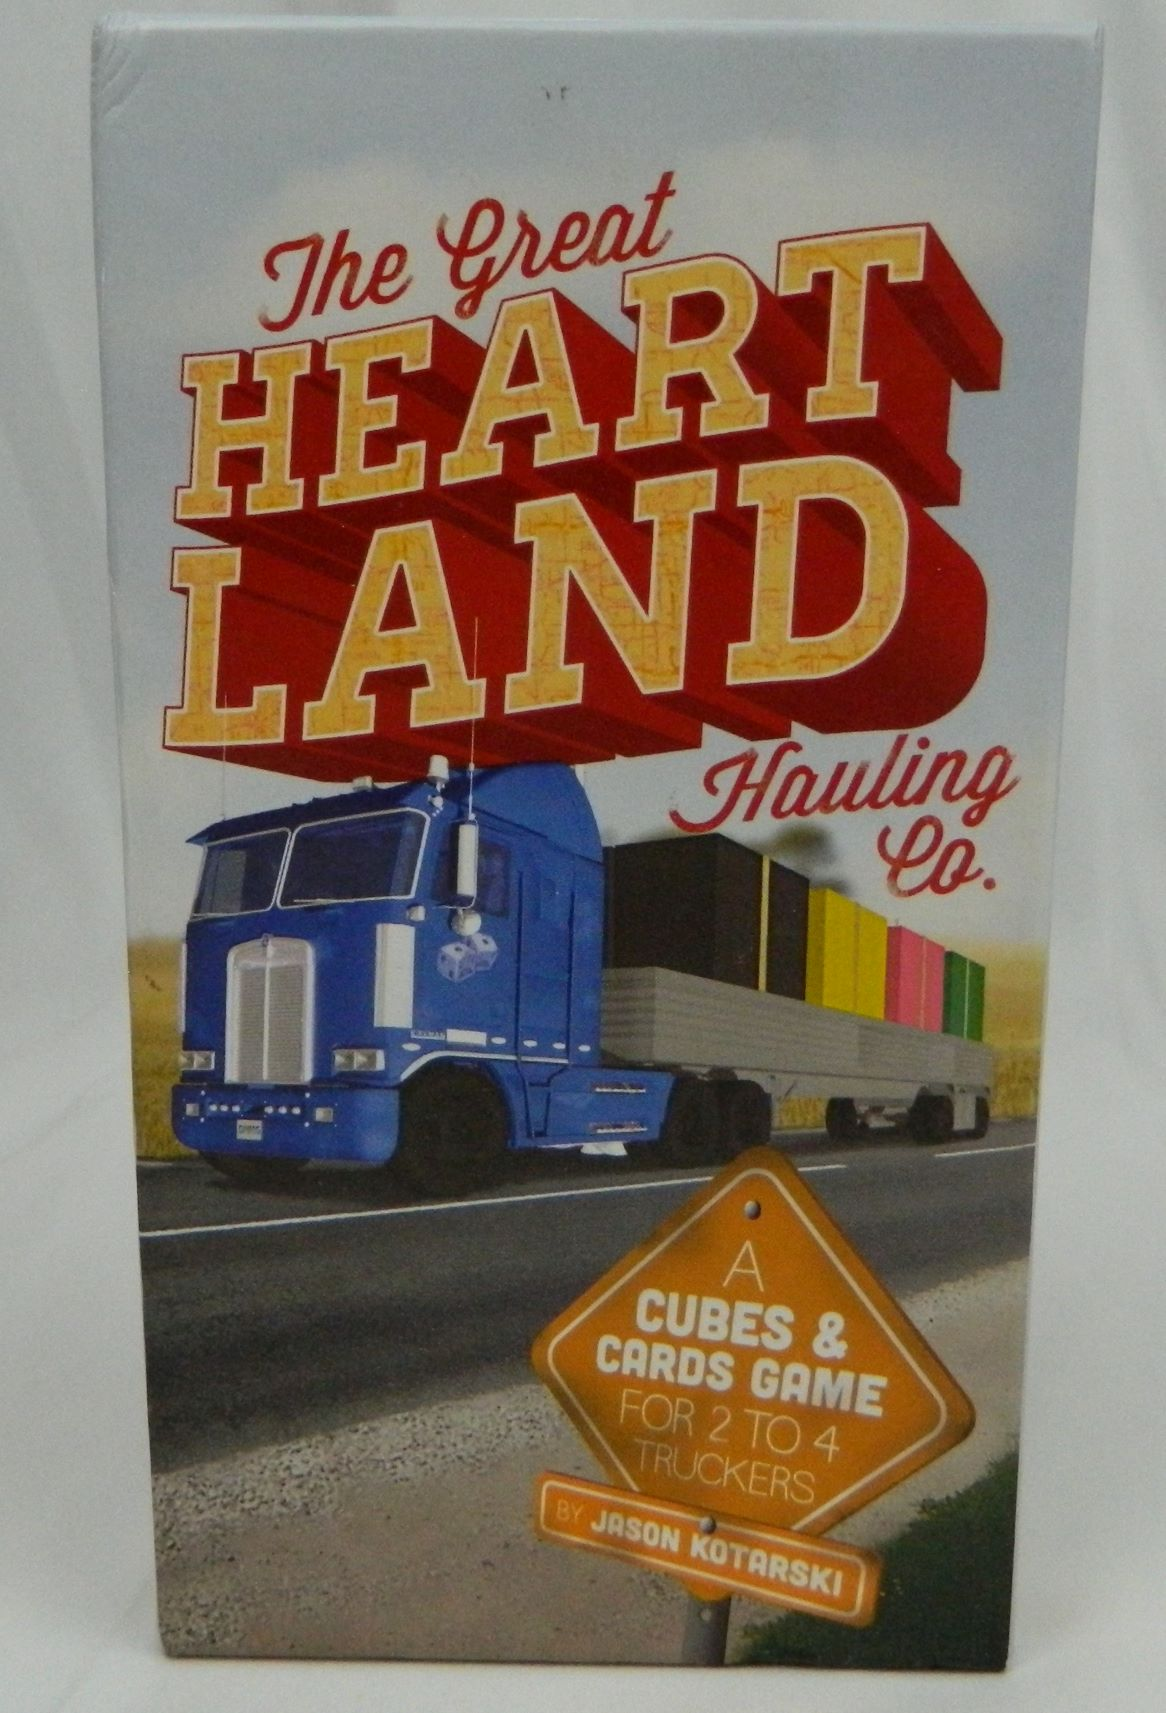 Box for the Great Heartland Hauling Co